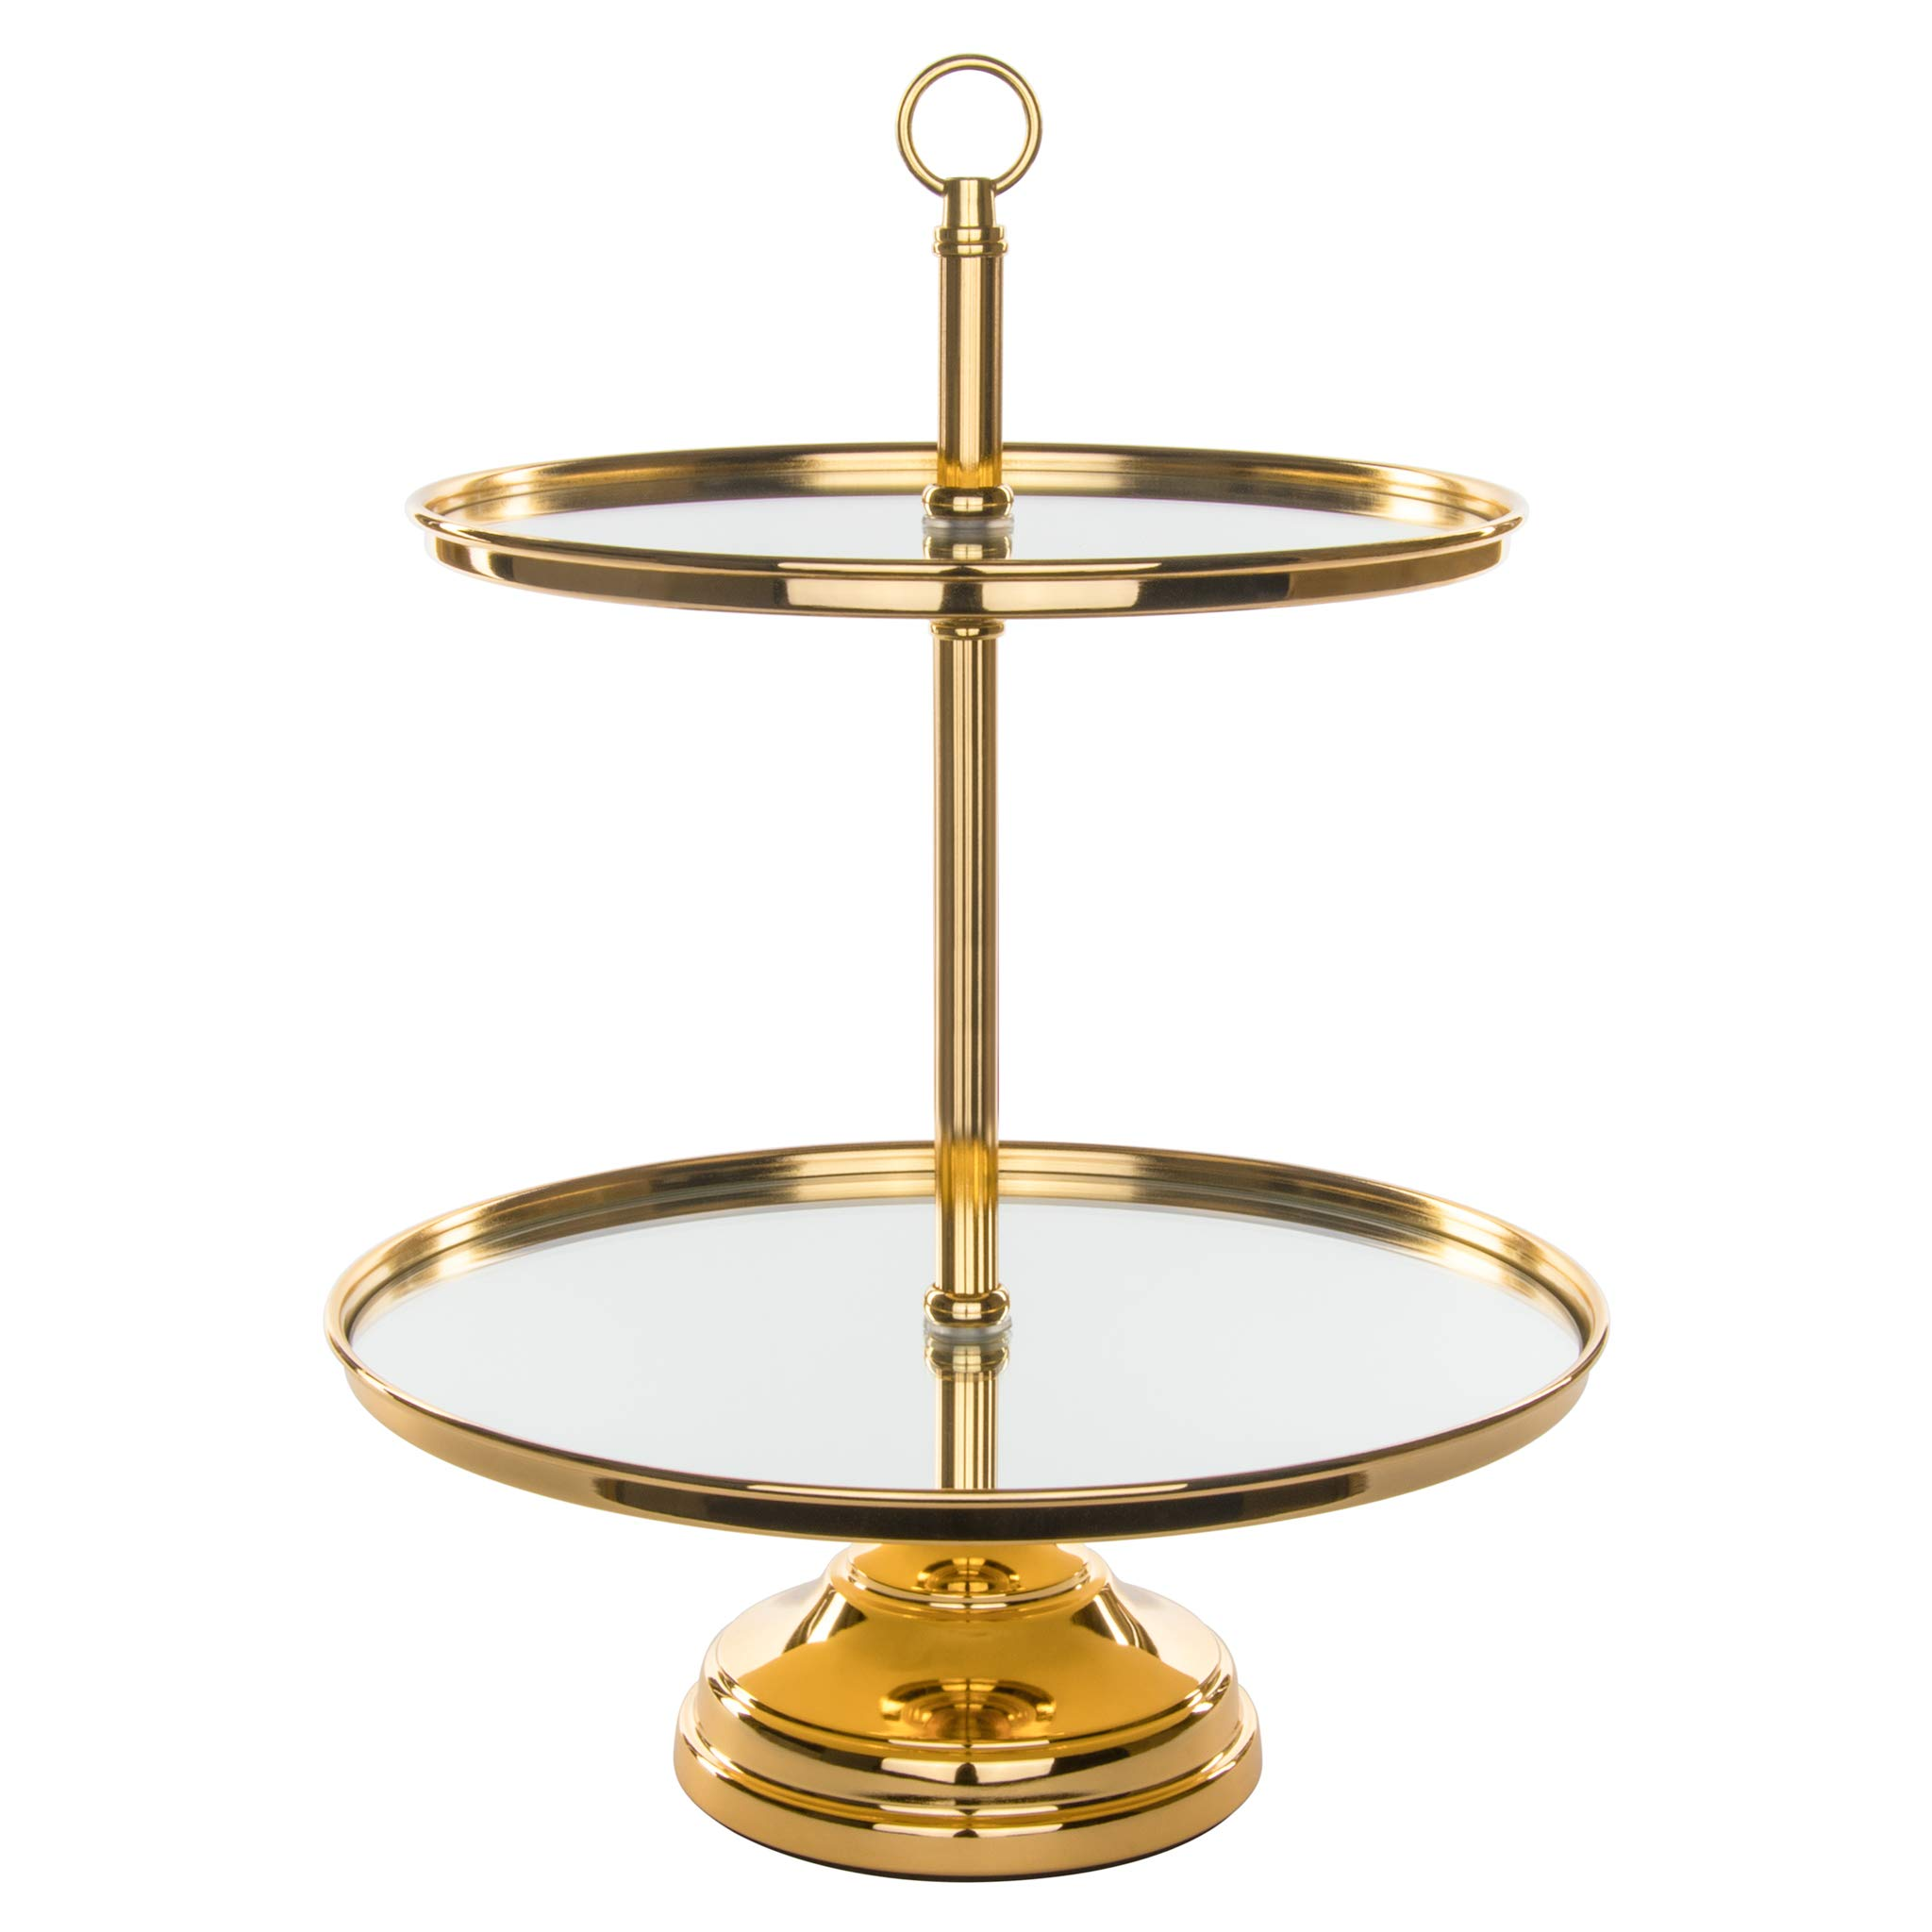 Amalfi Decor 2 Tier Dessert Cupcake Stand with Mirror Tops, Polished Metal Pastry Candy Cookie Tower Holder for Wedding Event Birthday Party, Round Modern Pedestal Tray, Gold by Amalfi Décor